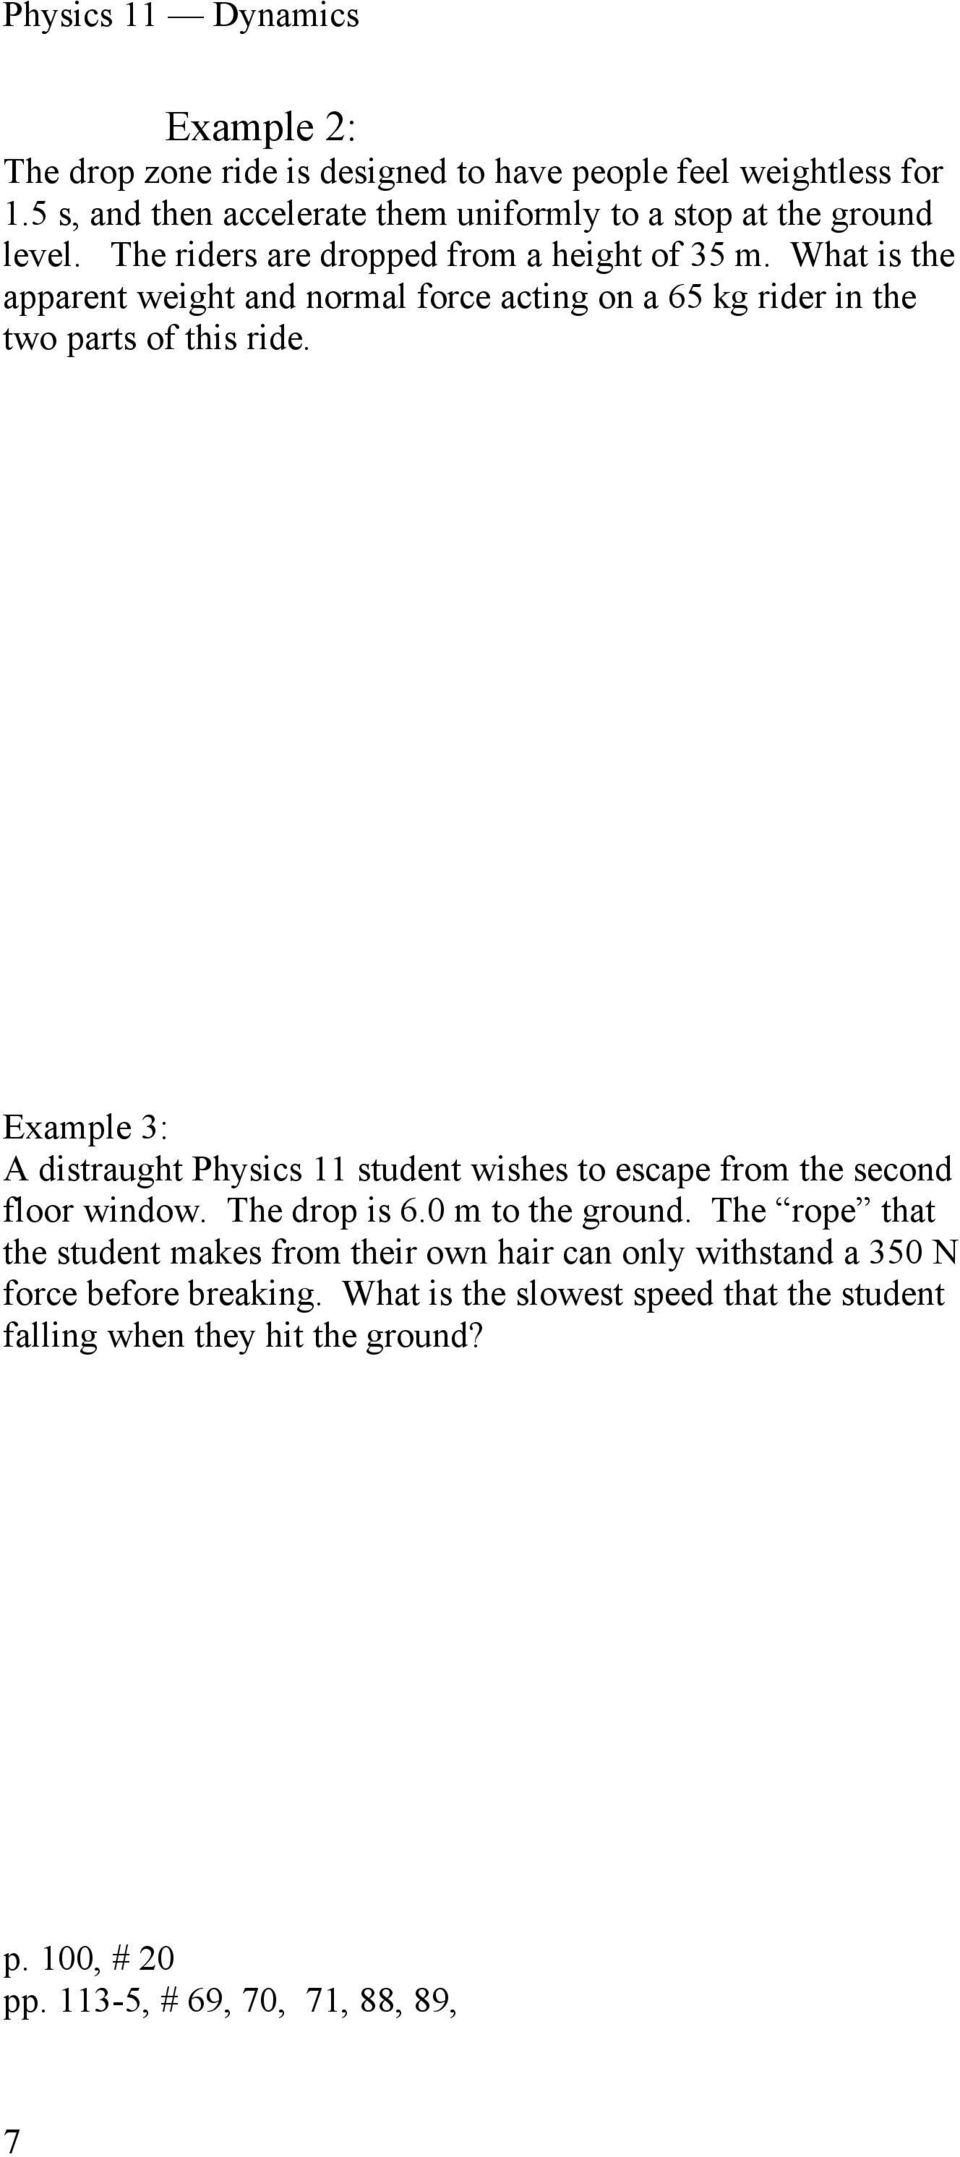 Example 3: A distraught Physics 11 student wishes to escape from the second floor window. The drop is 6.0 m to the ground.